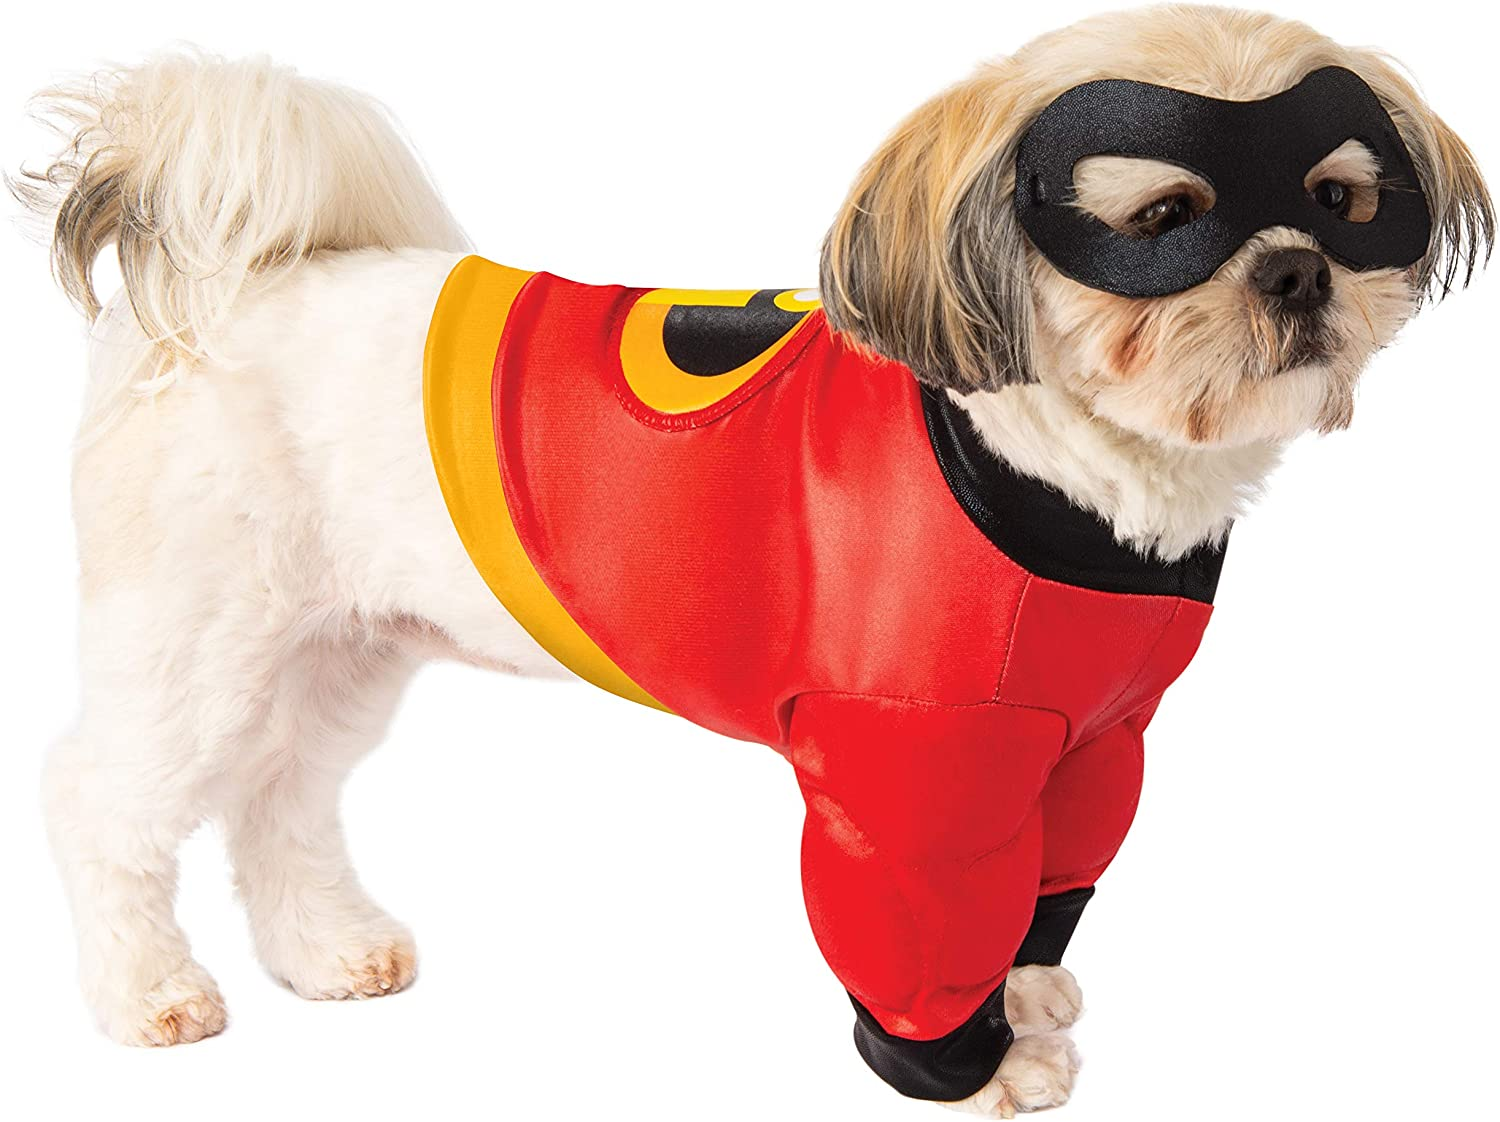 Rubie's Disney: Incredibles 2 Pet Costume Bombing new work Indefinitely Shirt and Mask